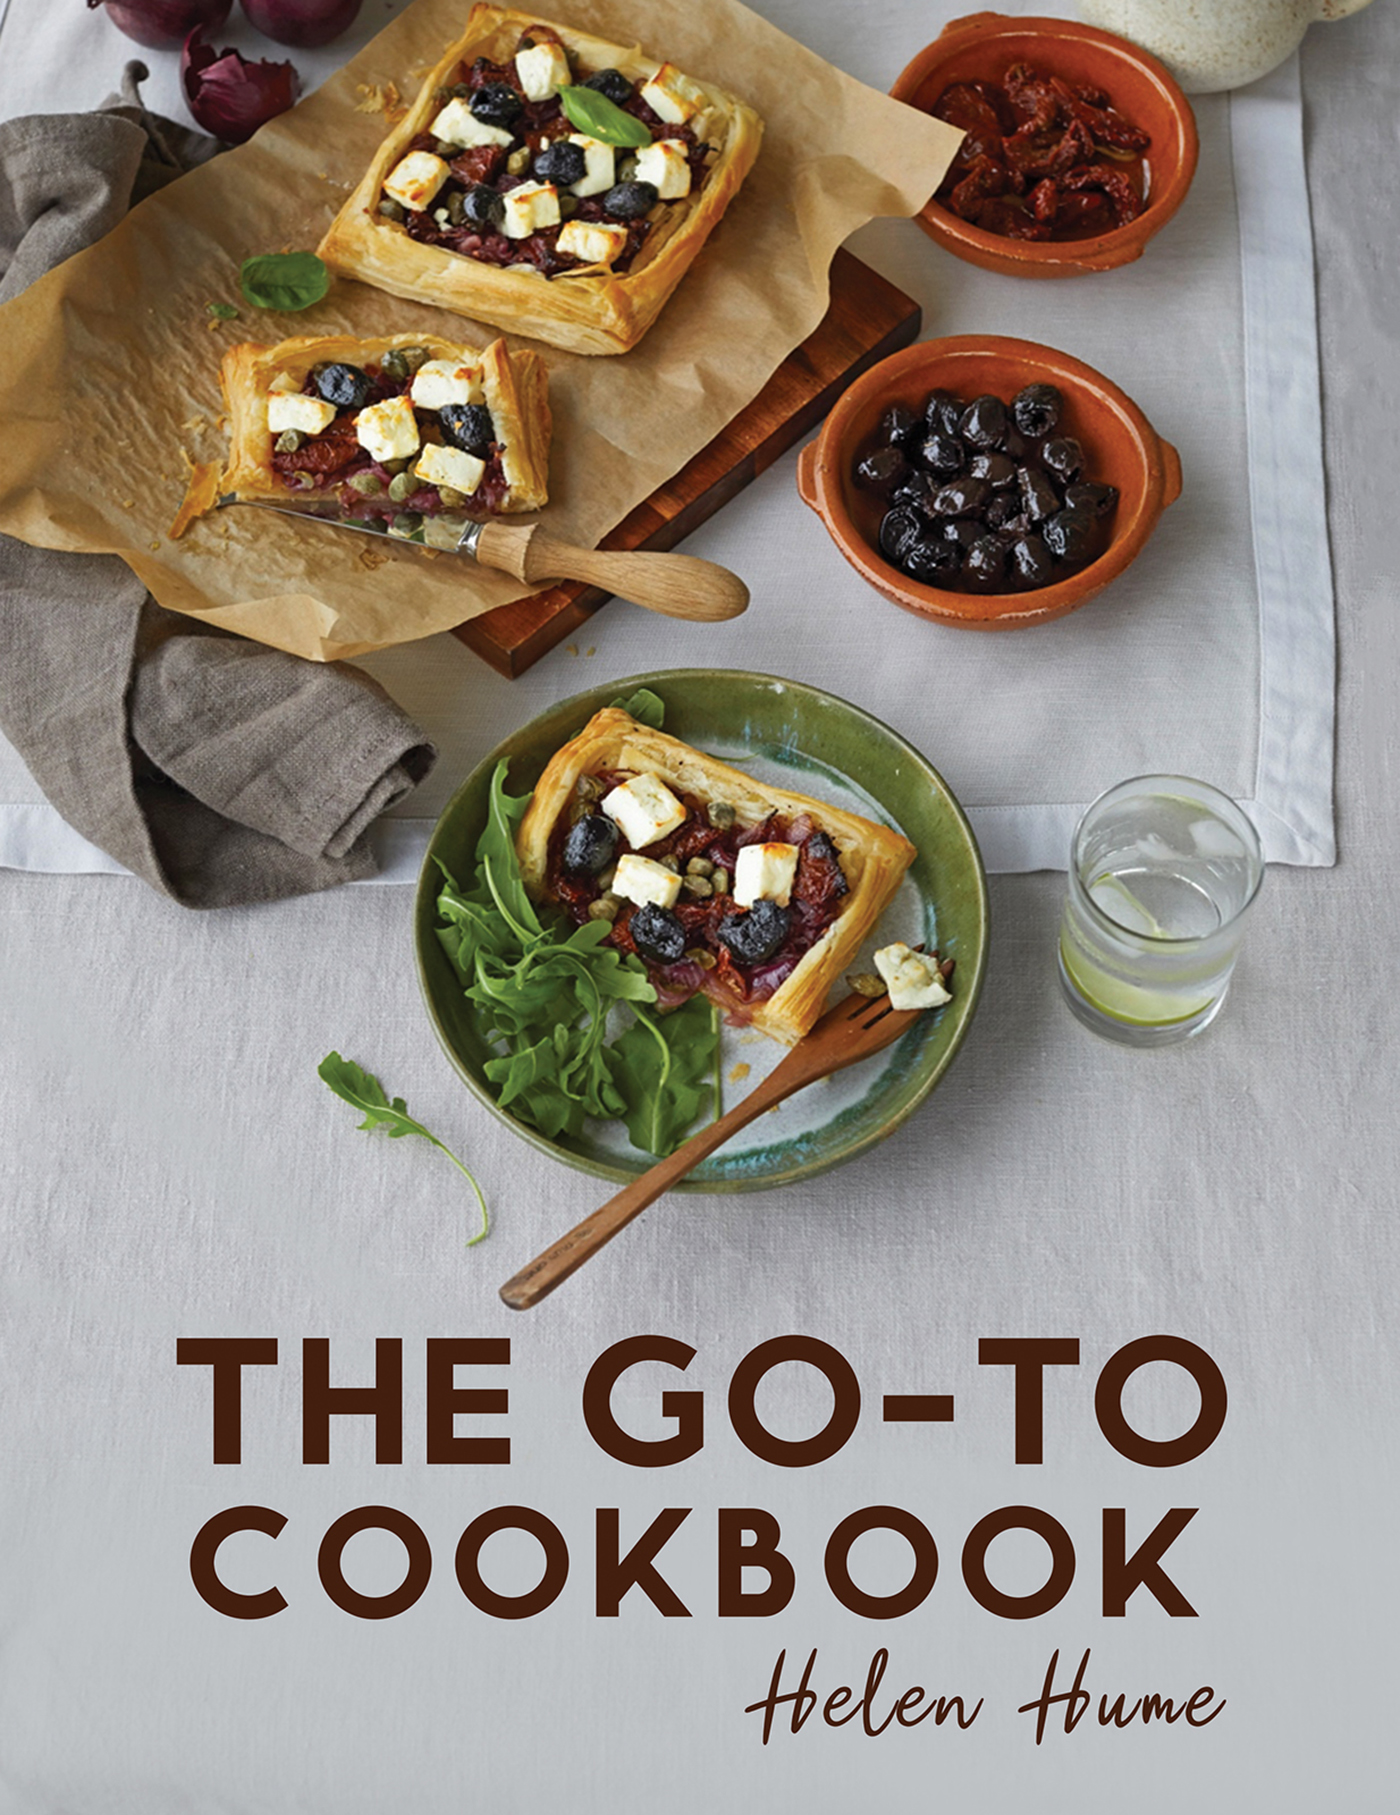 The Go-To Cookbook